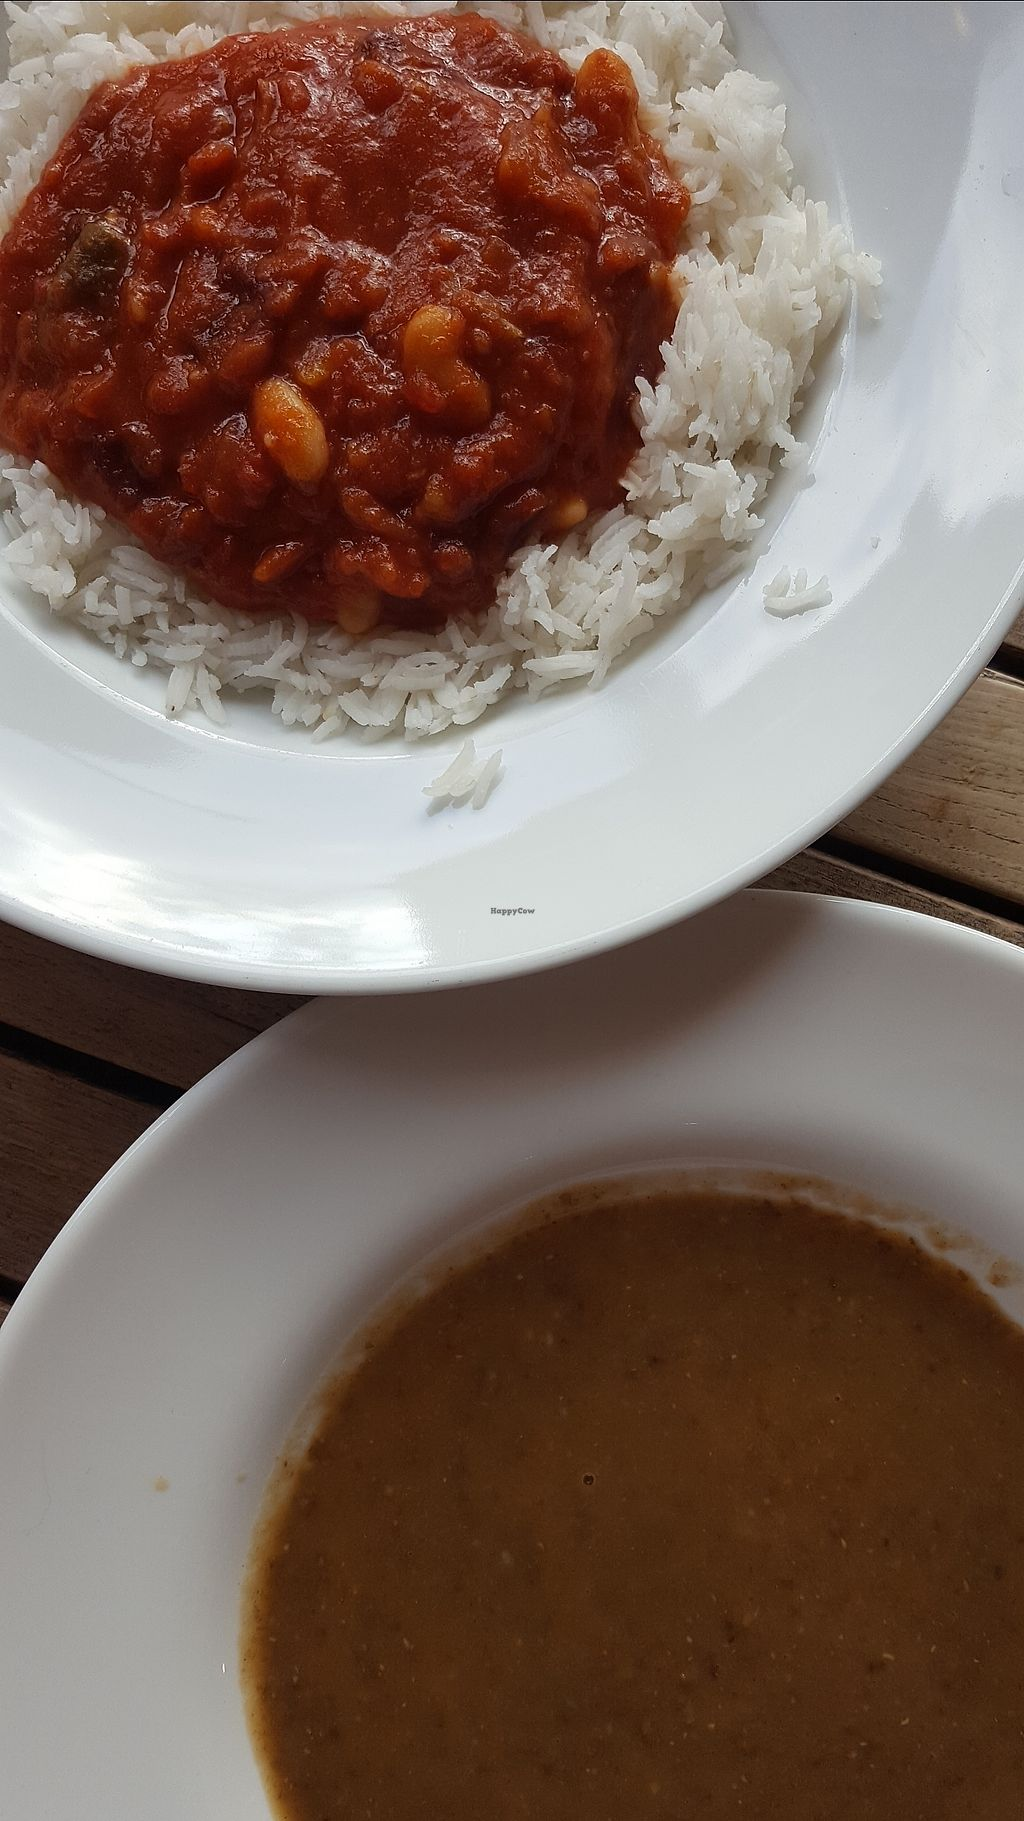 "Photo of Moreish Cafe Deli  by <a href=""/members/profile/VeganAnnaS"">VeganAnnaS</a> <br/>Vegan chilli and lentil soup <br/> December 23, 2017  - <a href='/contact/abuse/image/106829/338481'>Report</a>"